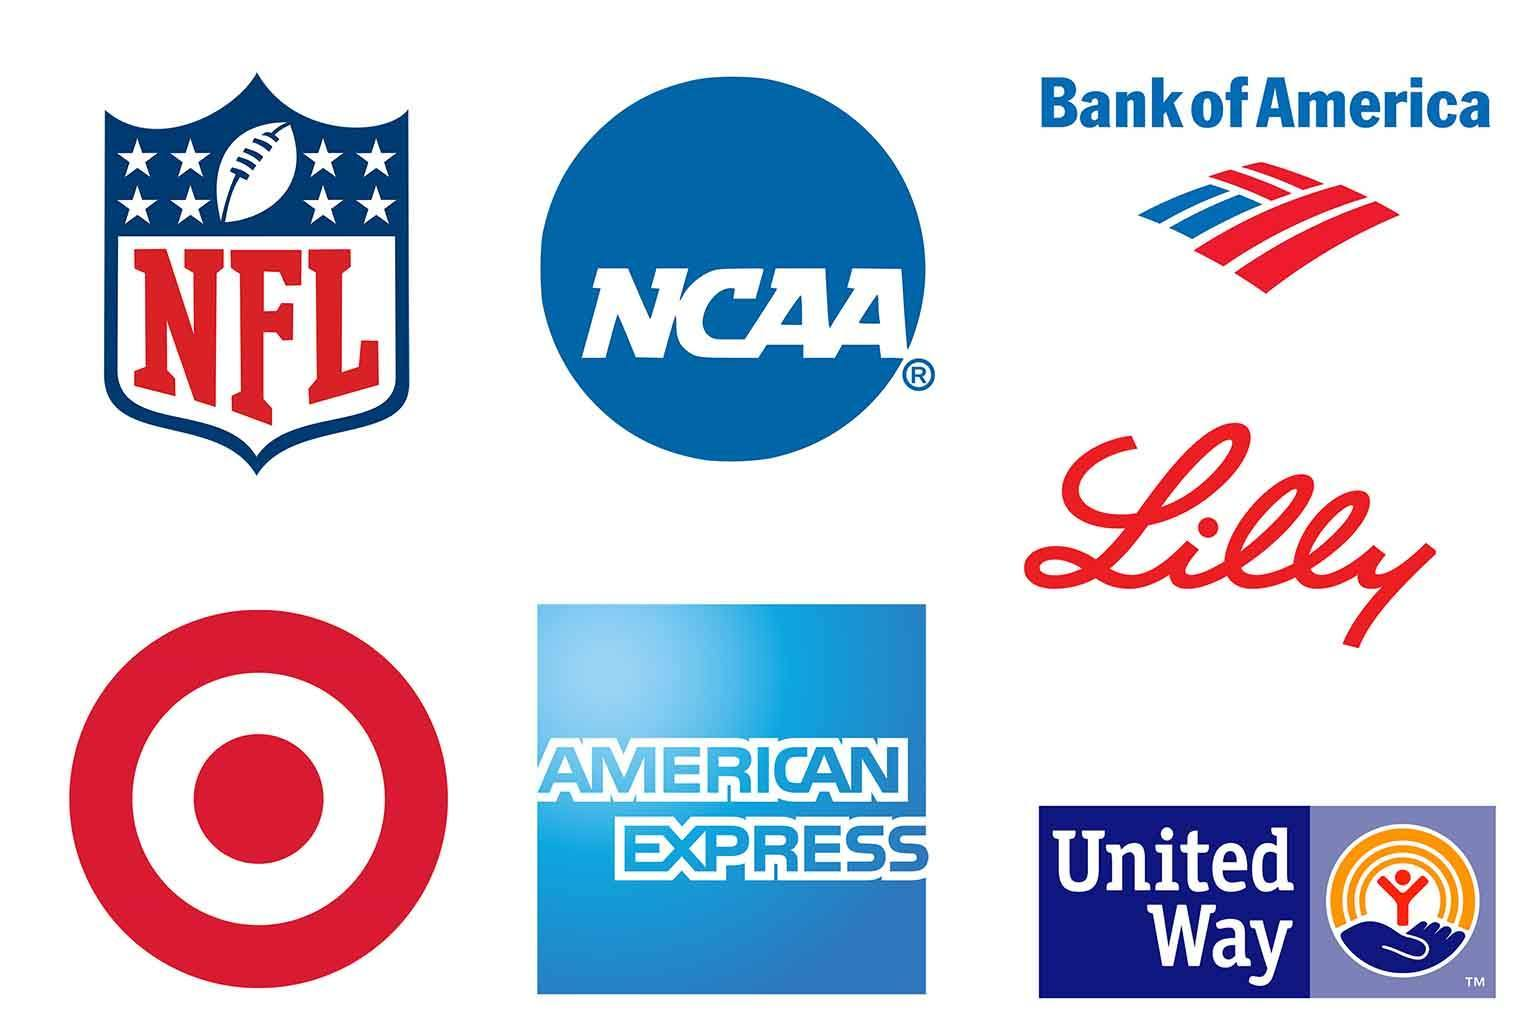 contract research logos American Express, Bank of America, National Collegiate Athletic Association, Eli Lilly and Company, Target, National Football League, United Way Worldwide